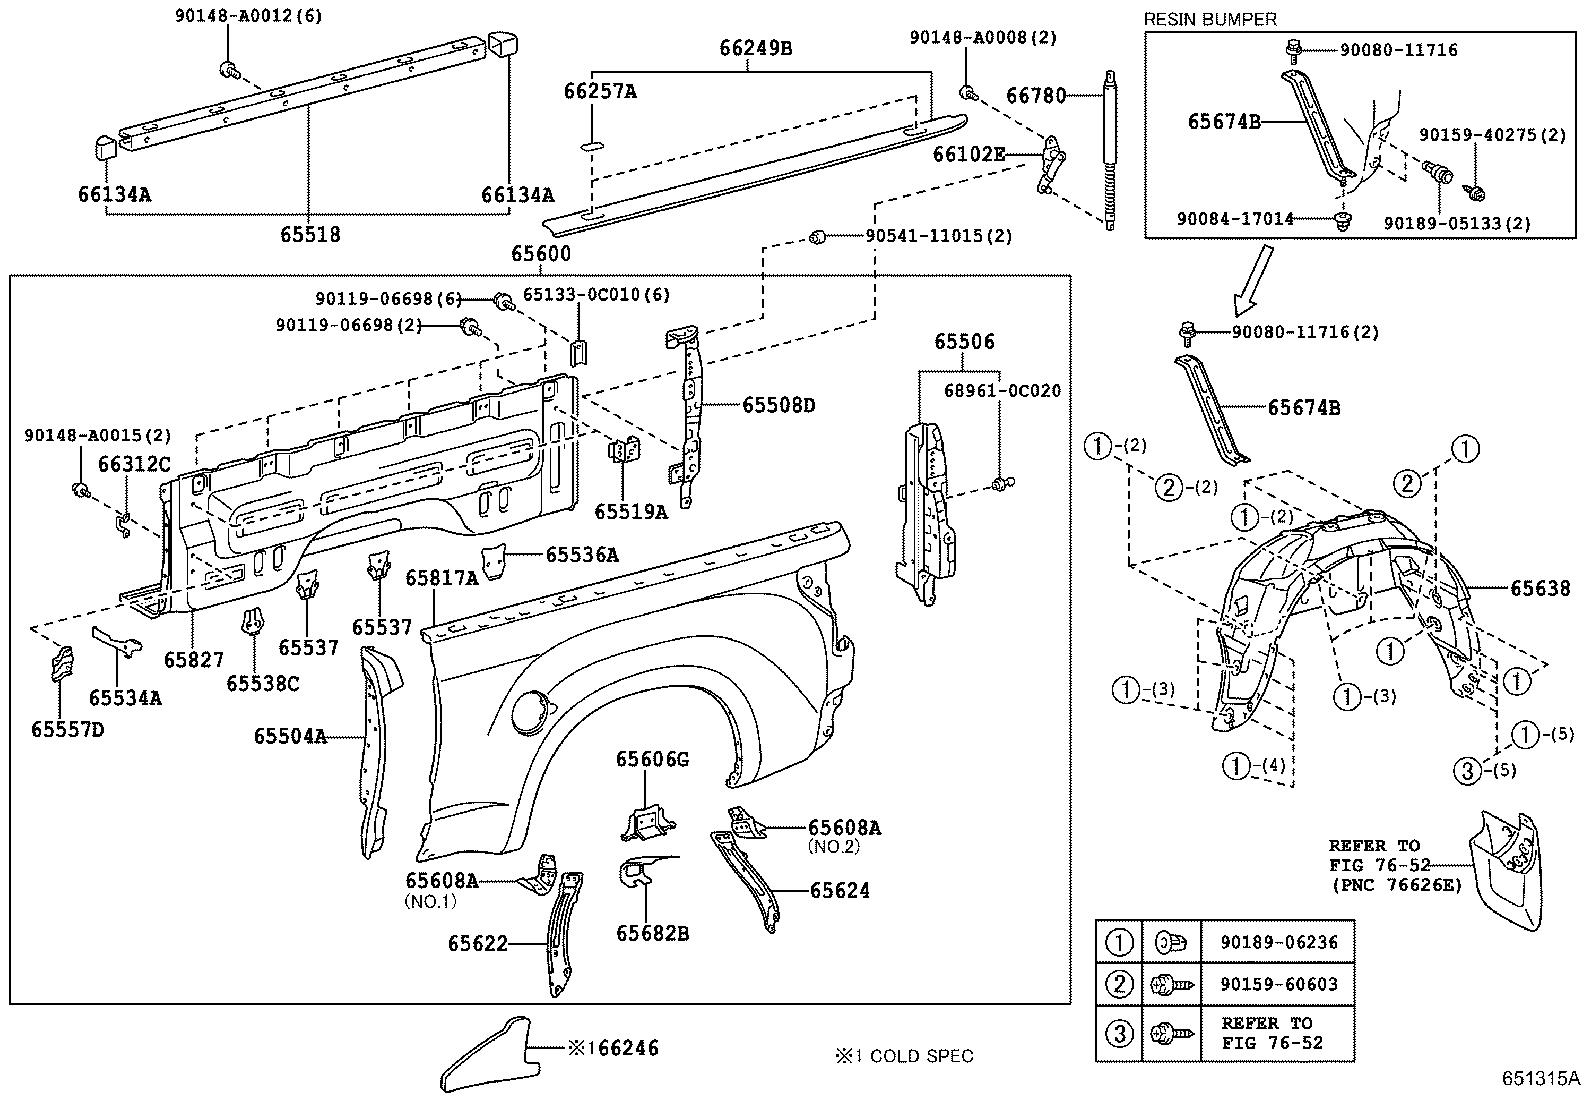 toyota camry interior parts diagram 2001 honda civic wiring 2014 tundra protector rear body side panel left